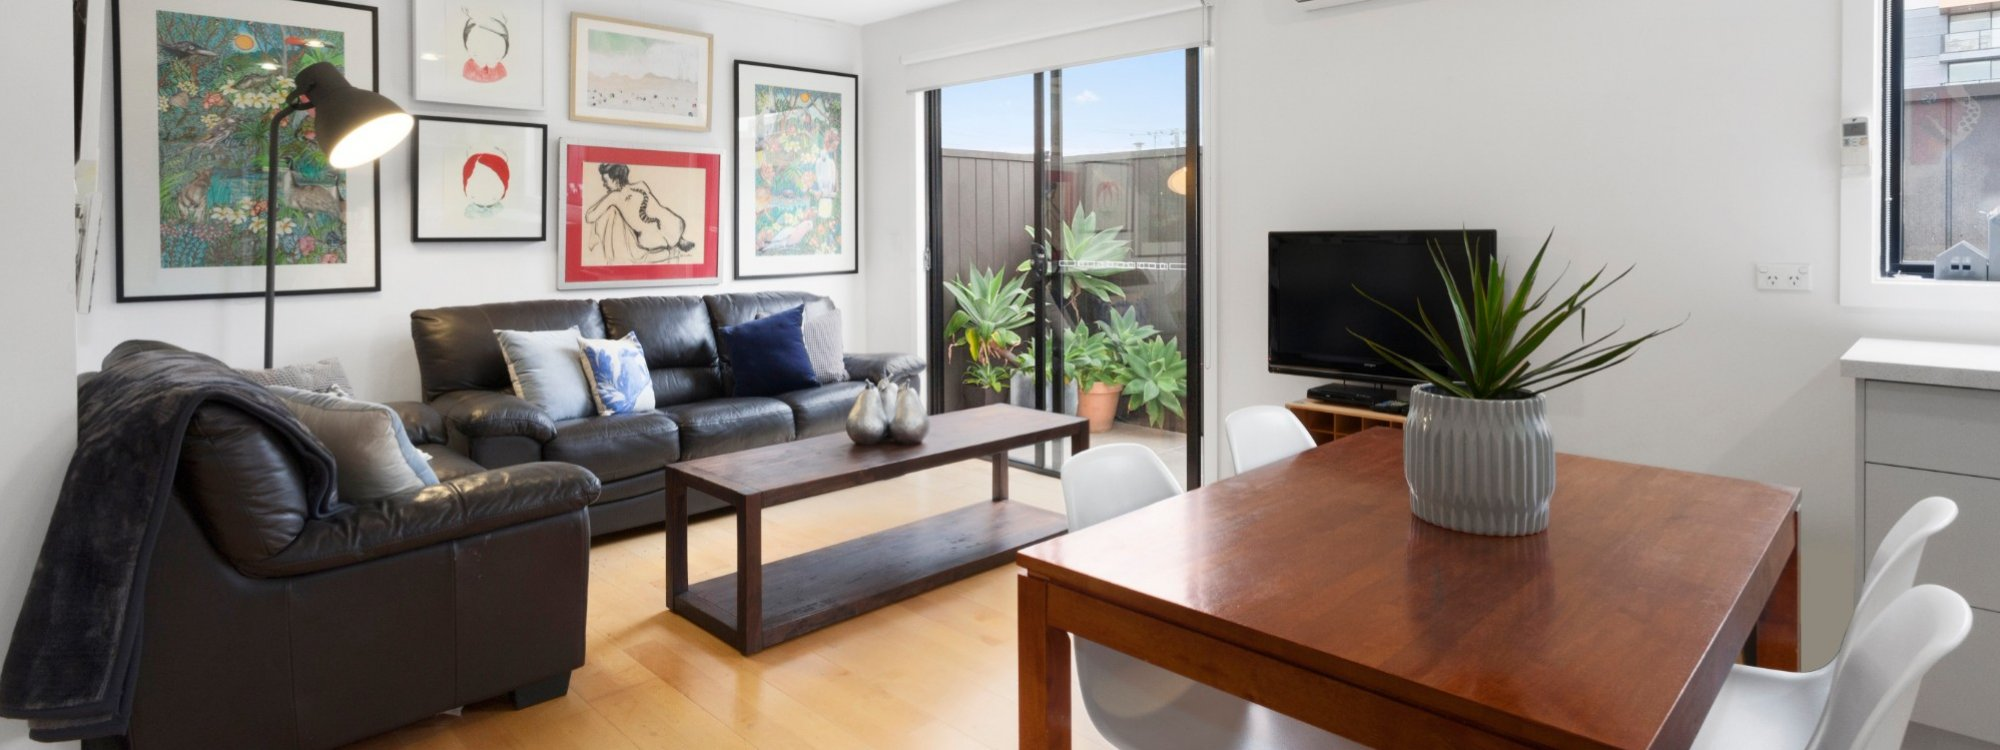 Manallack Apartments Boyd - Melbourne - Living Dining Area 1